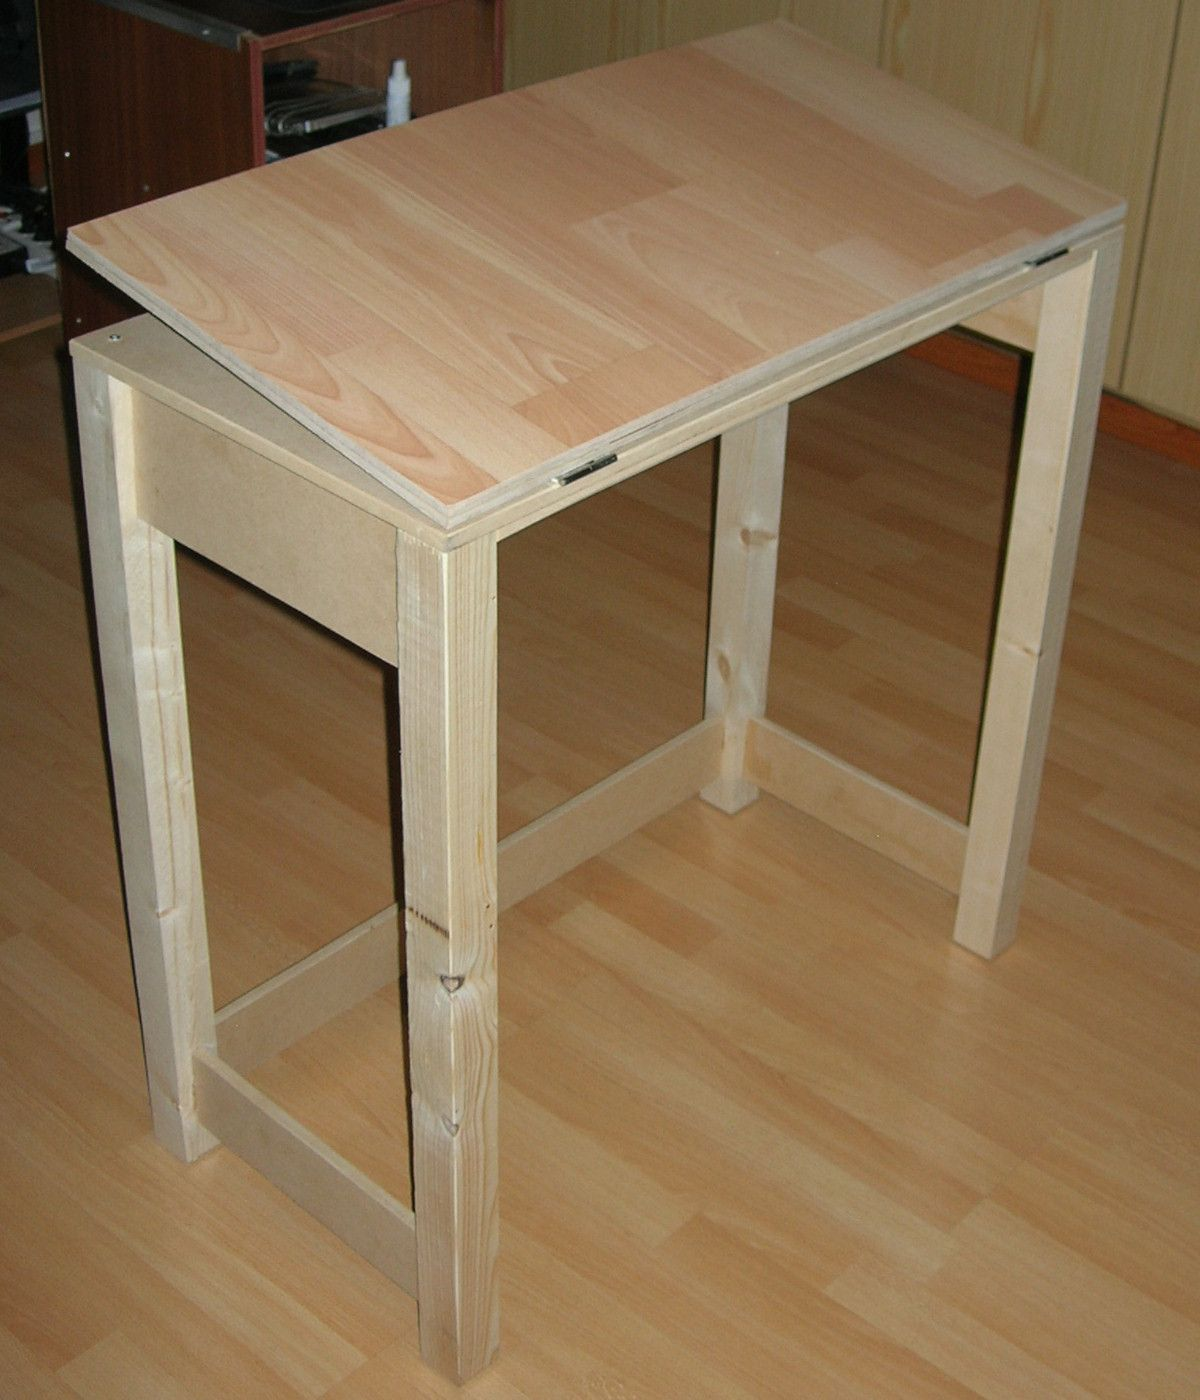 Diy wood folding table - I Ve Been Playing Around With The Idea Of Getting Myself A Small Drafting Table